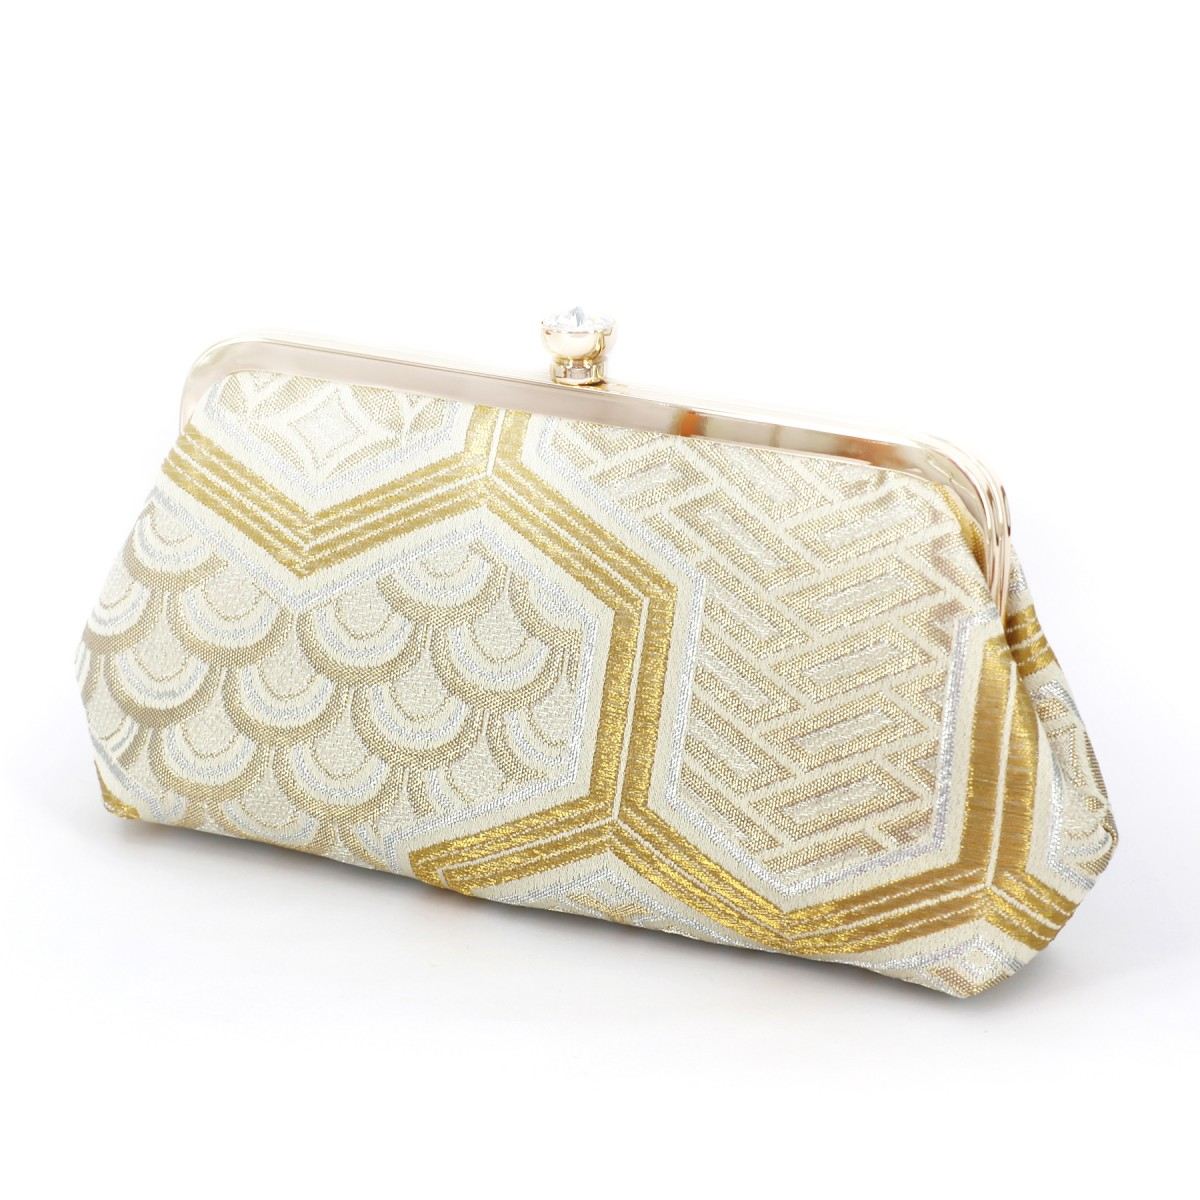 Swaroski Crystal Kimono Clutch with Bishamon Patterns